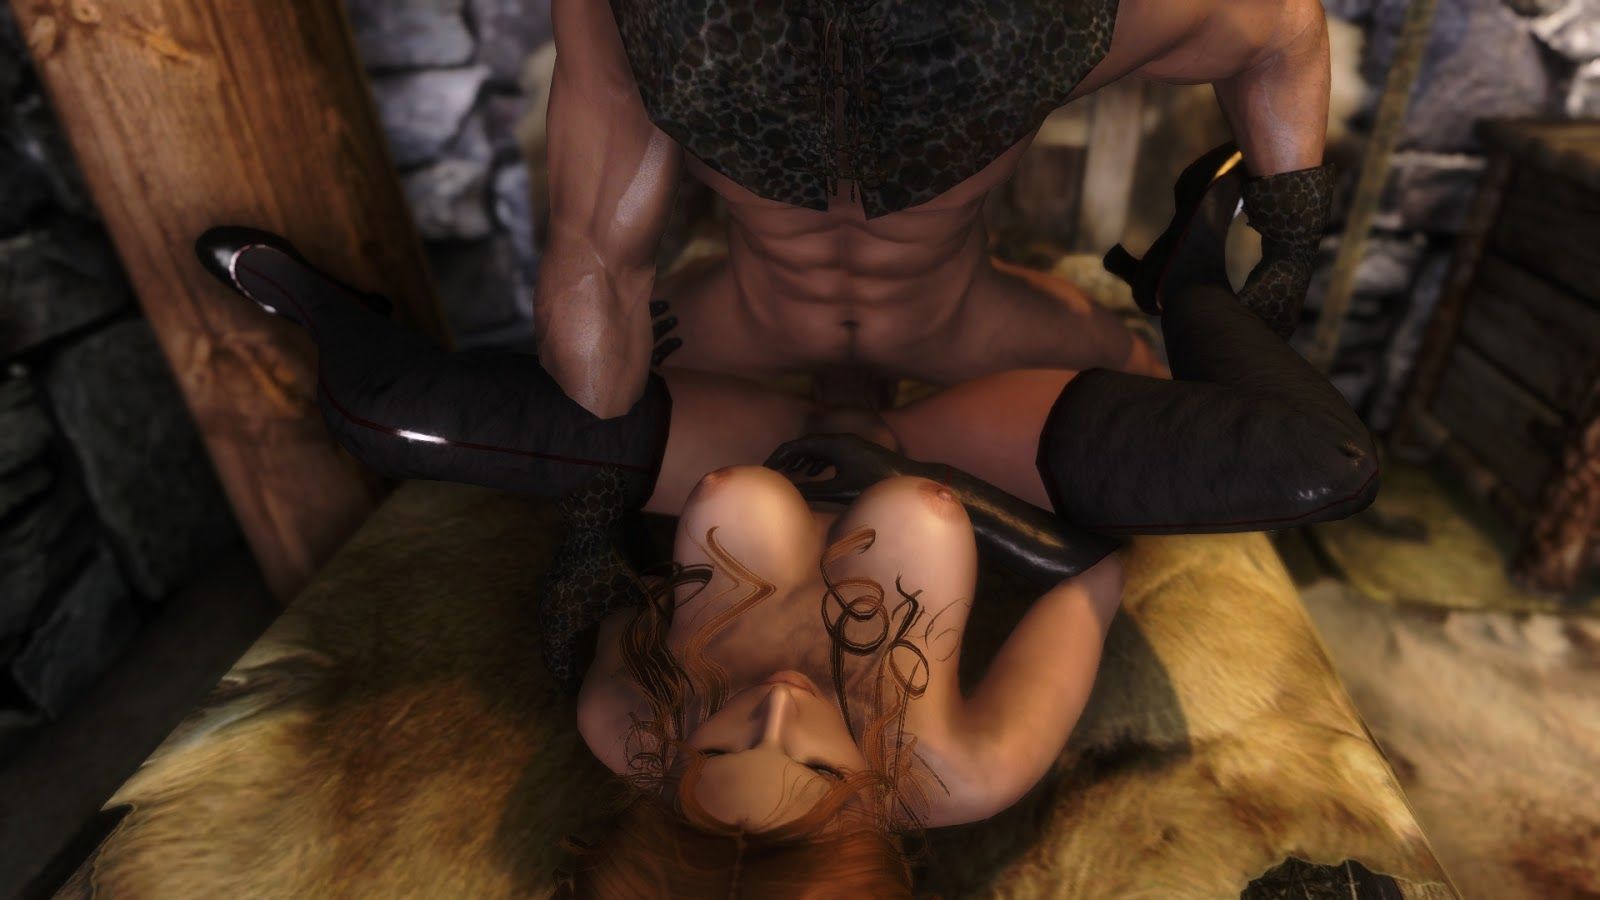 Skyrim porn picture exposed tube